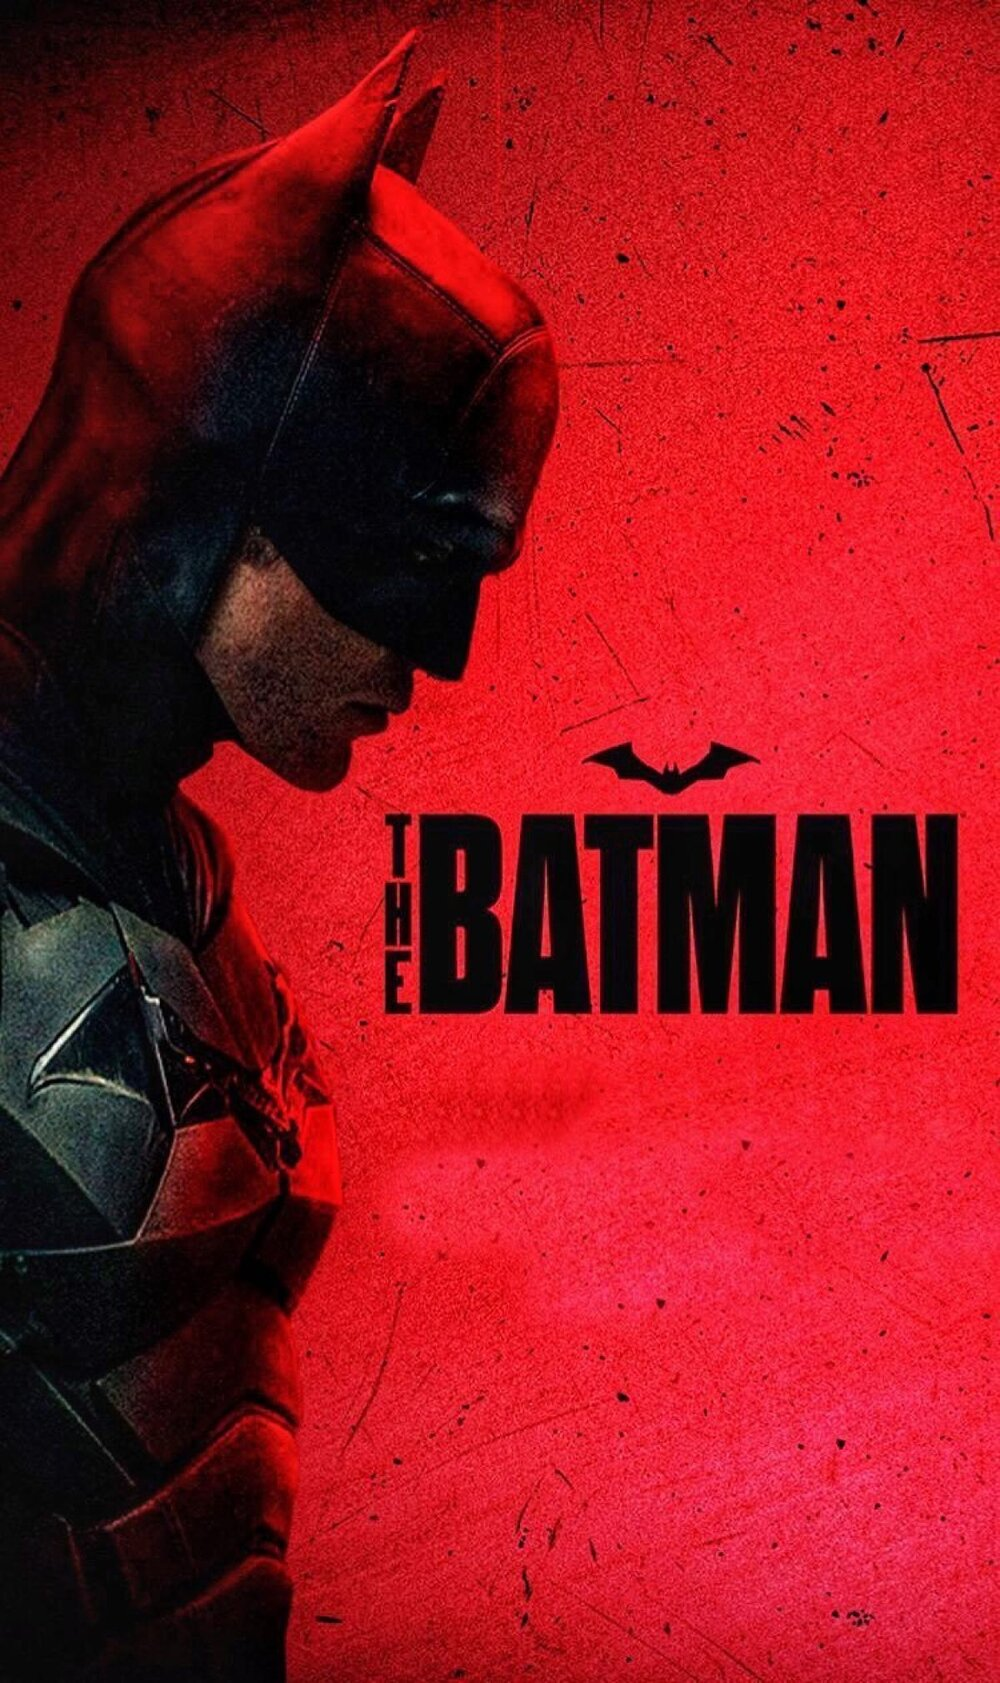 New Poster Art For THE BATMAN5